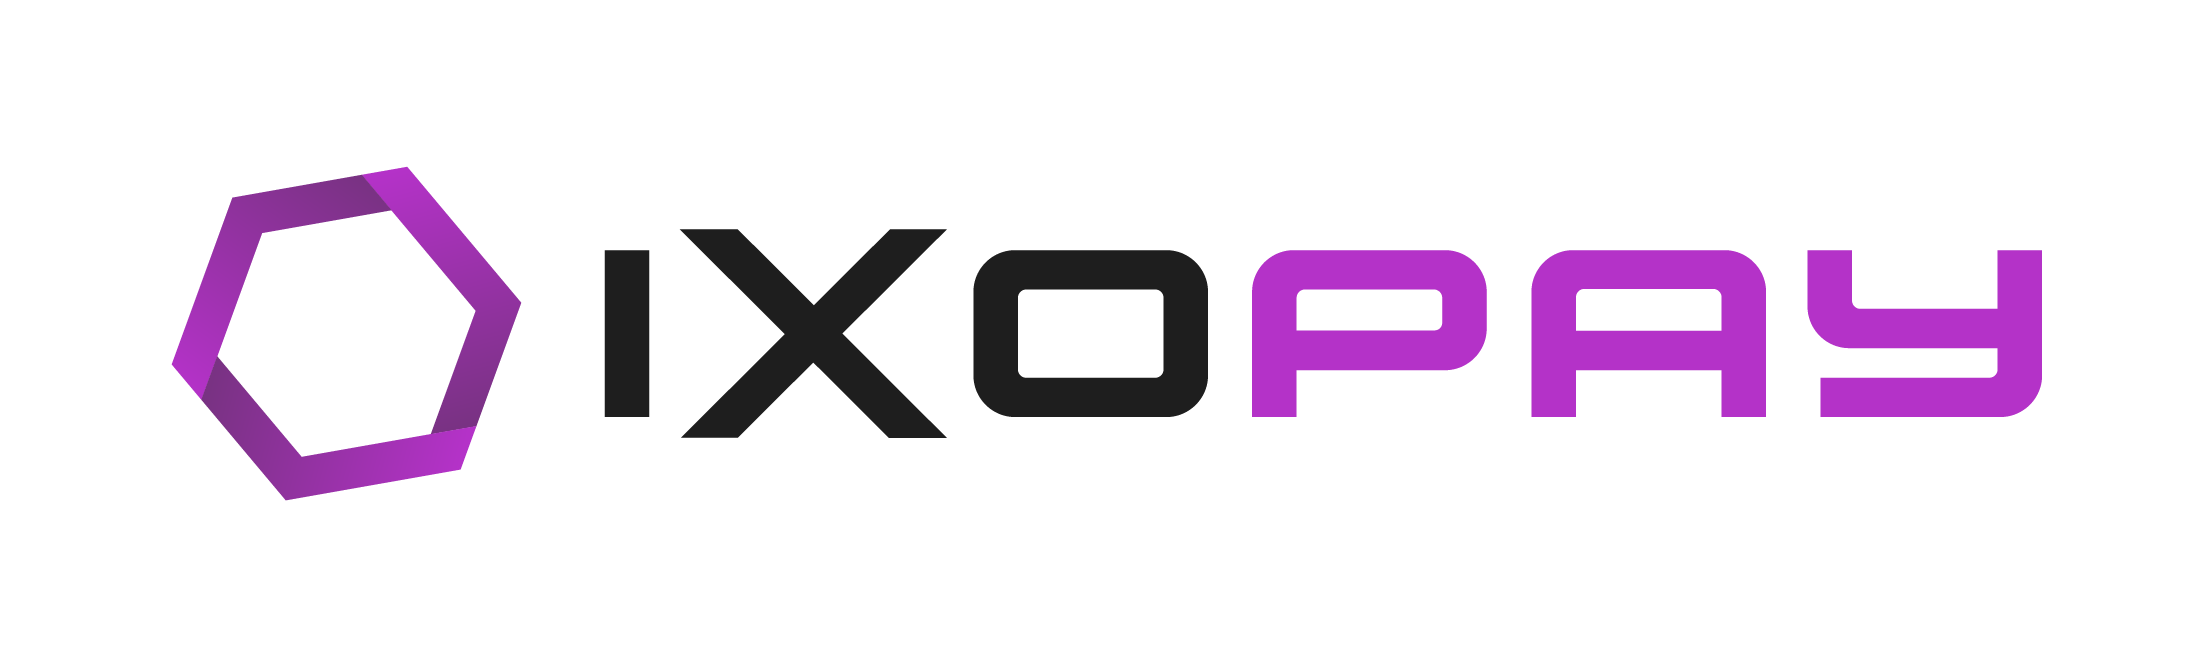 logo of IXOPAY